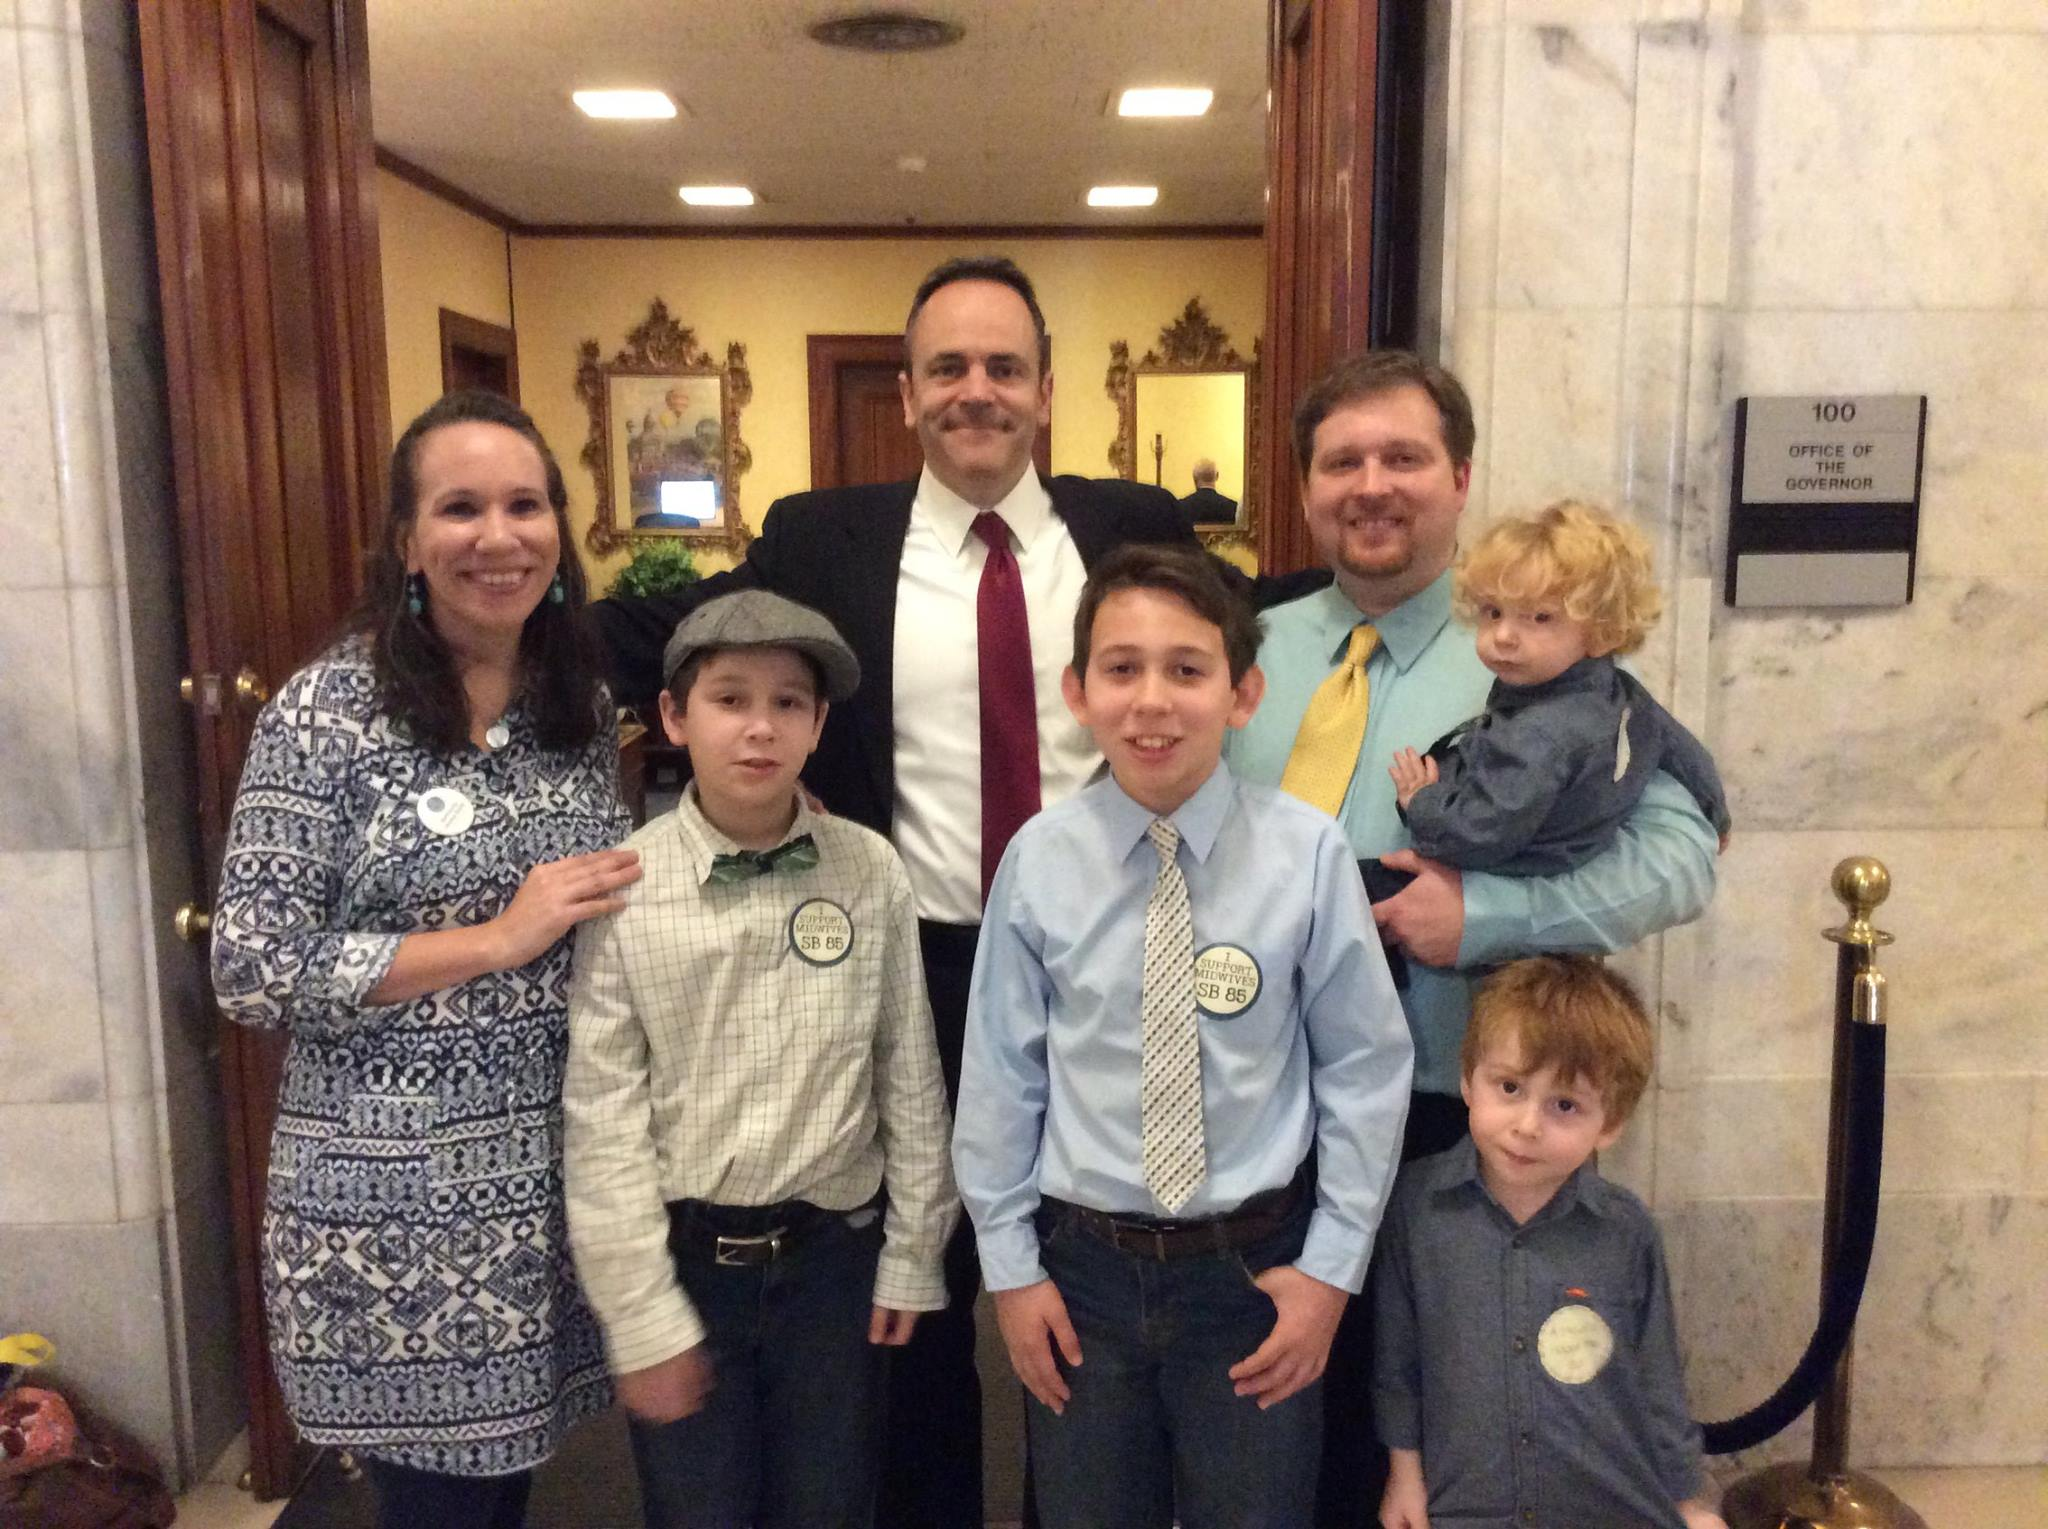 The Lasley family with Gov. Bevin